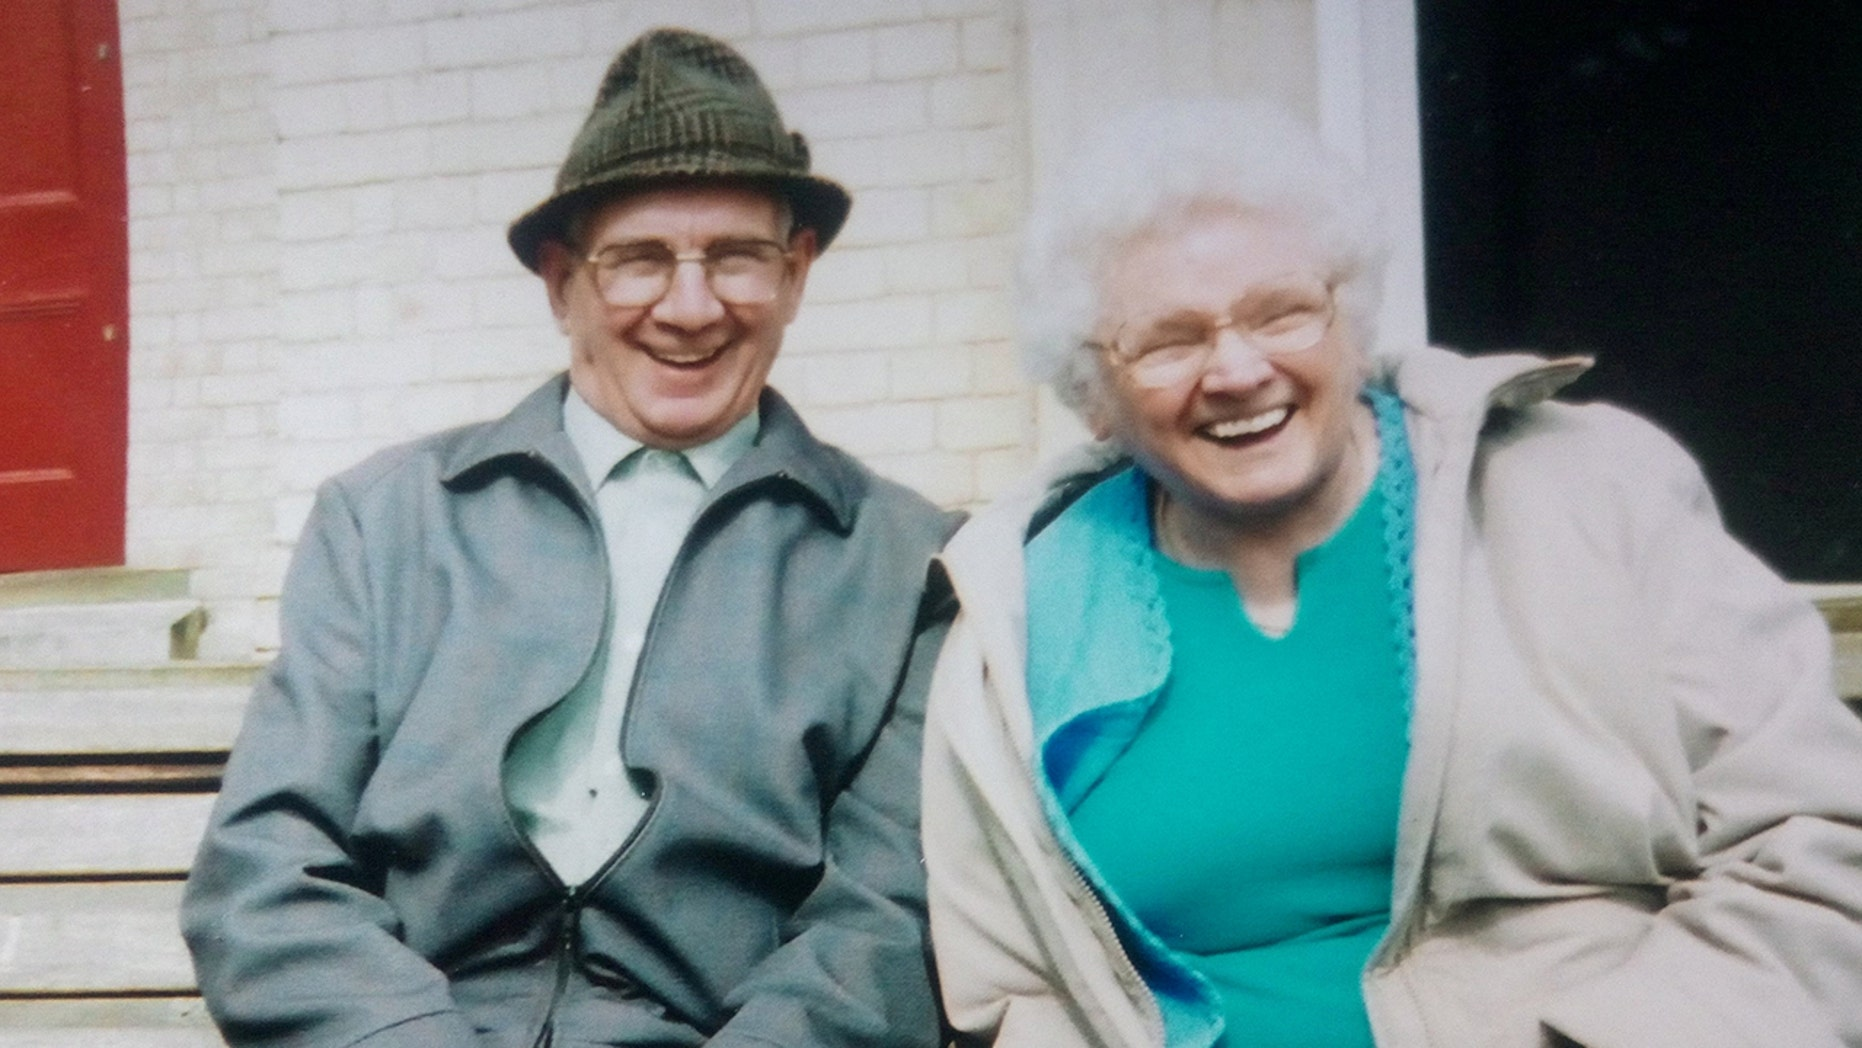 """Amy Hardy, 92, died 10 days after Arnold, as she sensed """"something was wrong"""" with him, her loved ones said."""